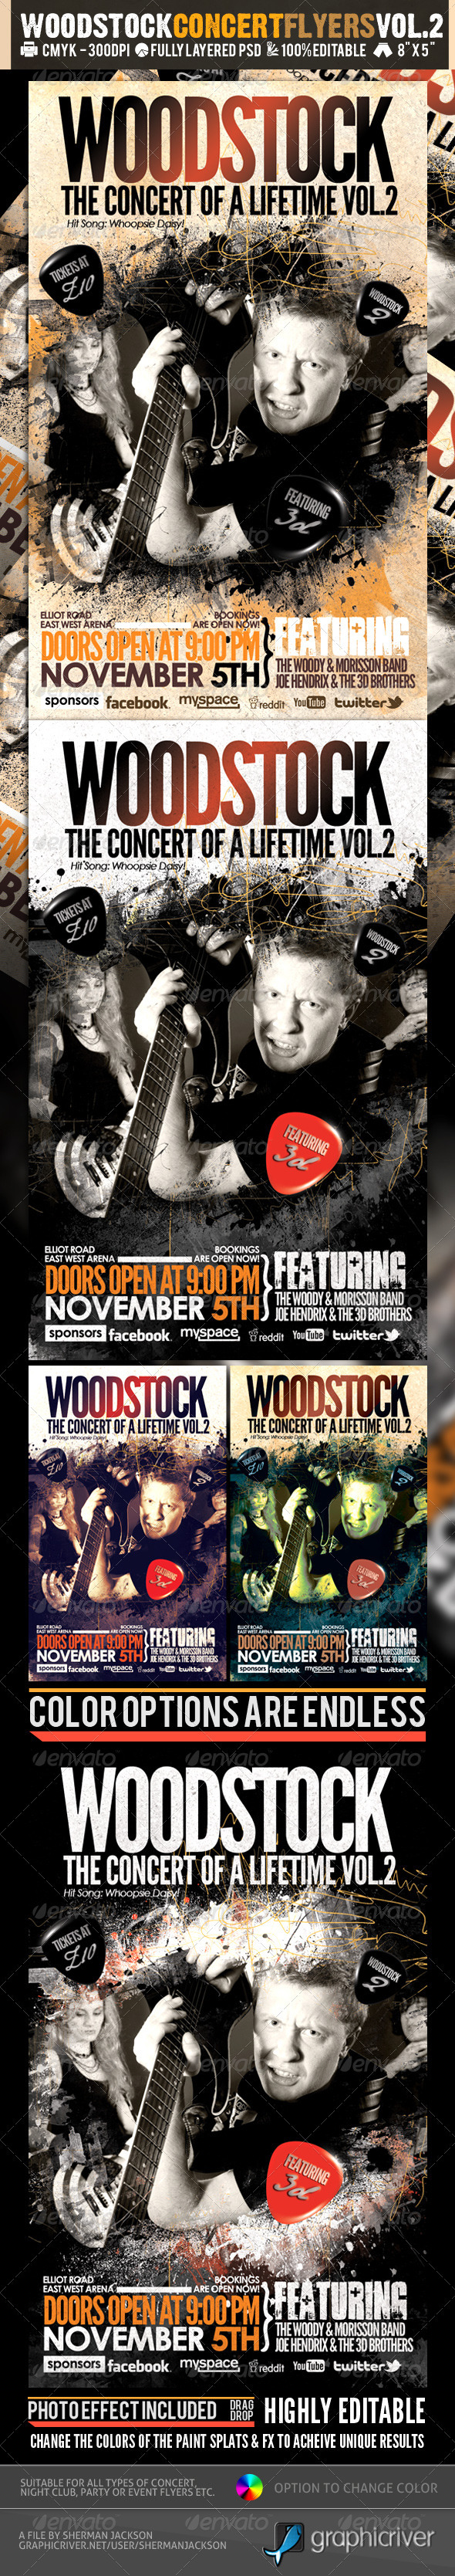 Woodstock PSD Flyer Templates Vol-2 - Concerts Events